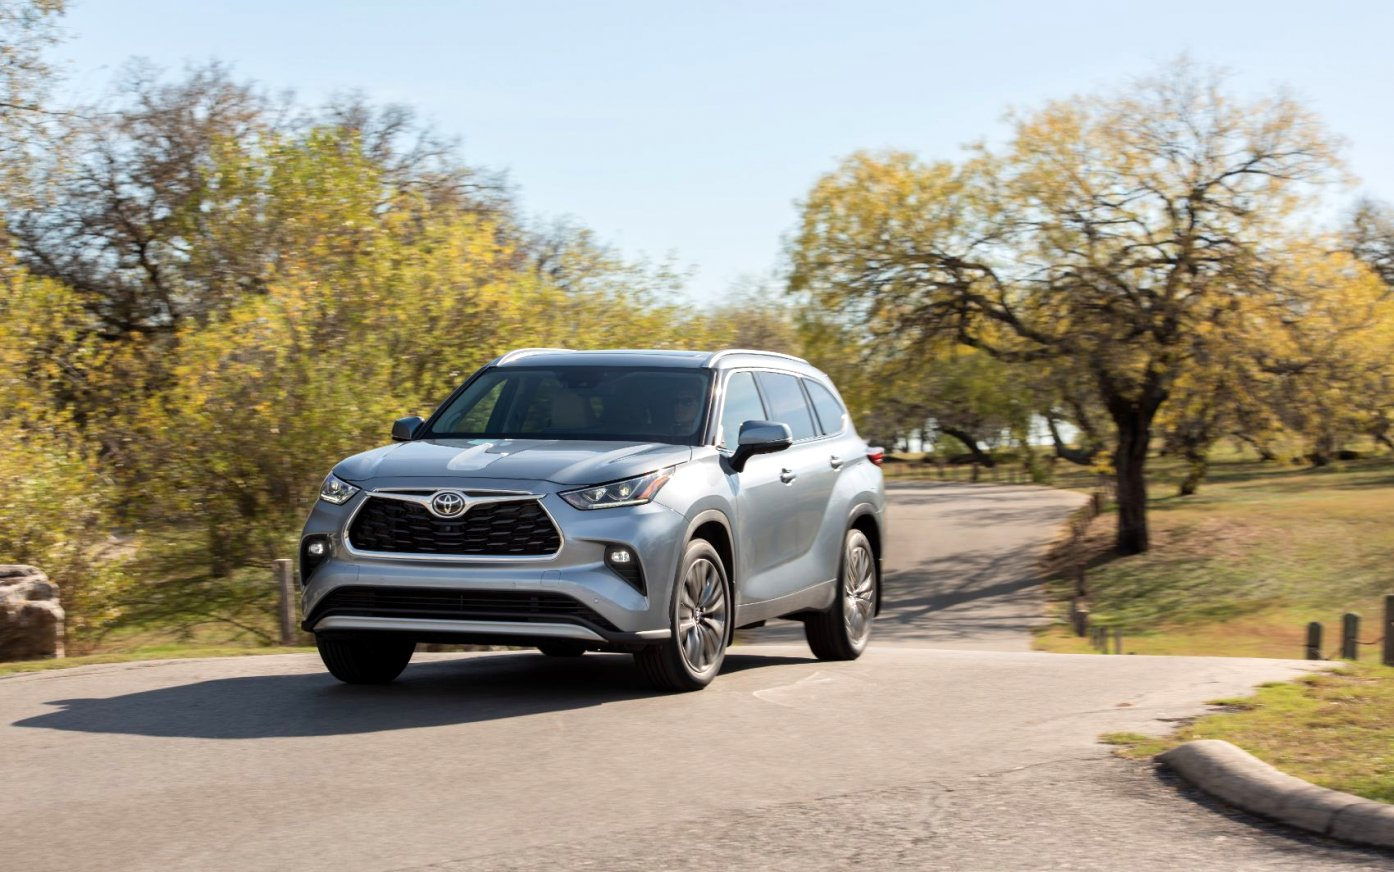 2020 toyota highlander review Spesification